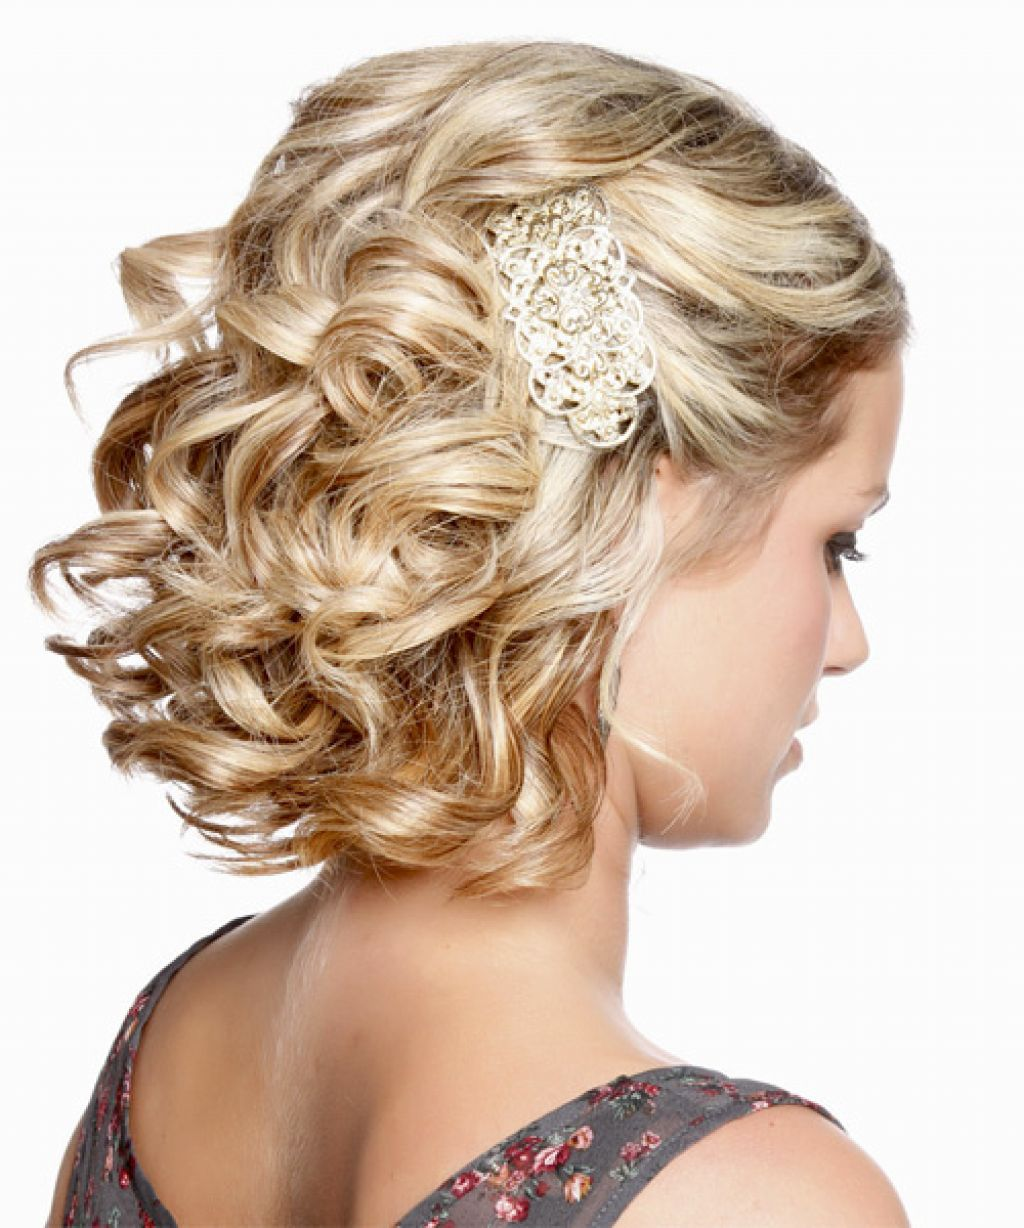 wedding hairstyle for shoulder length hair with curly hair